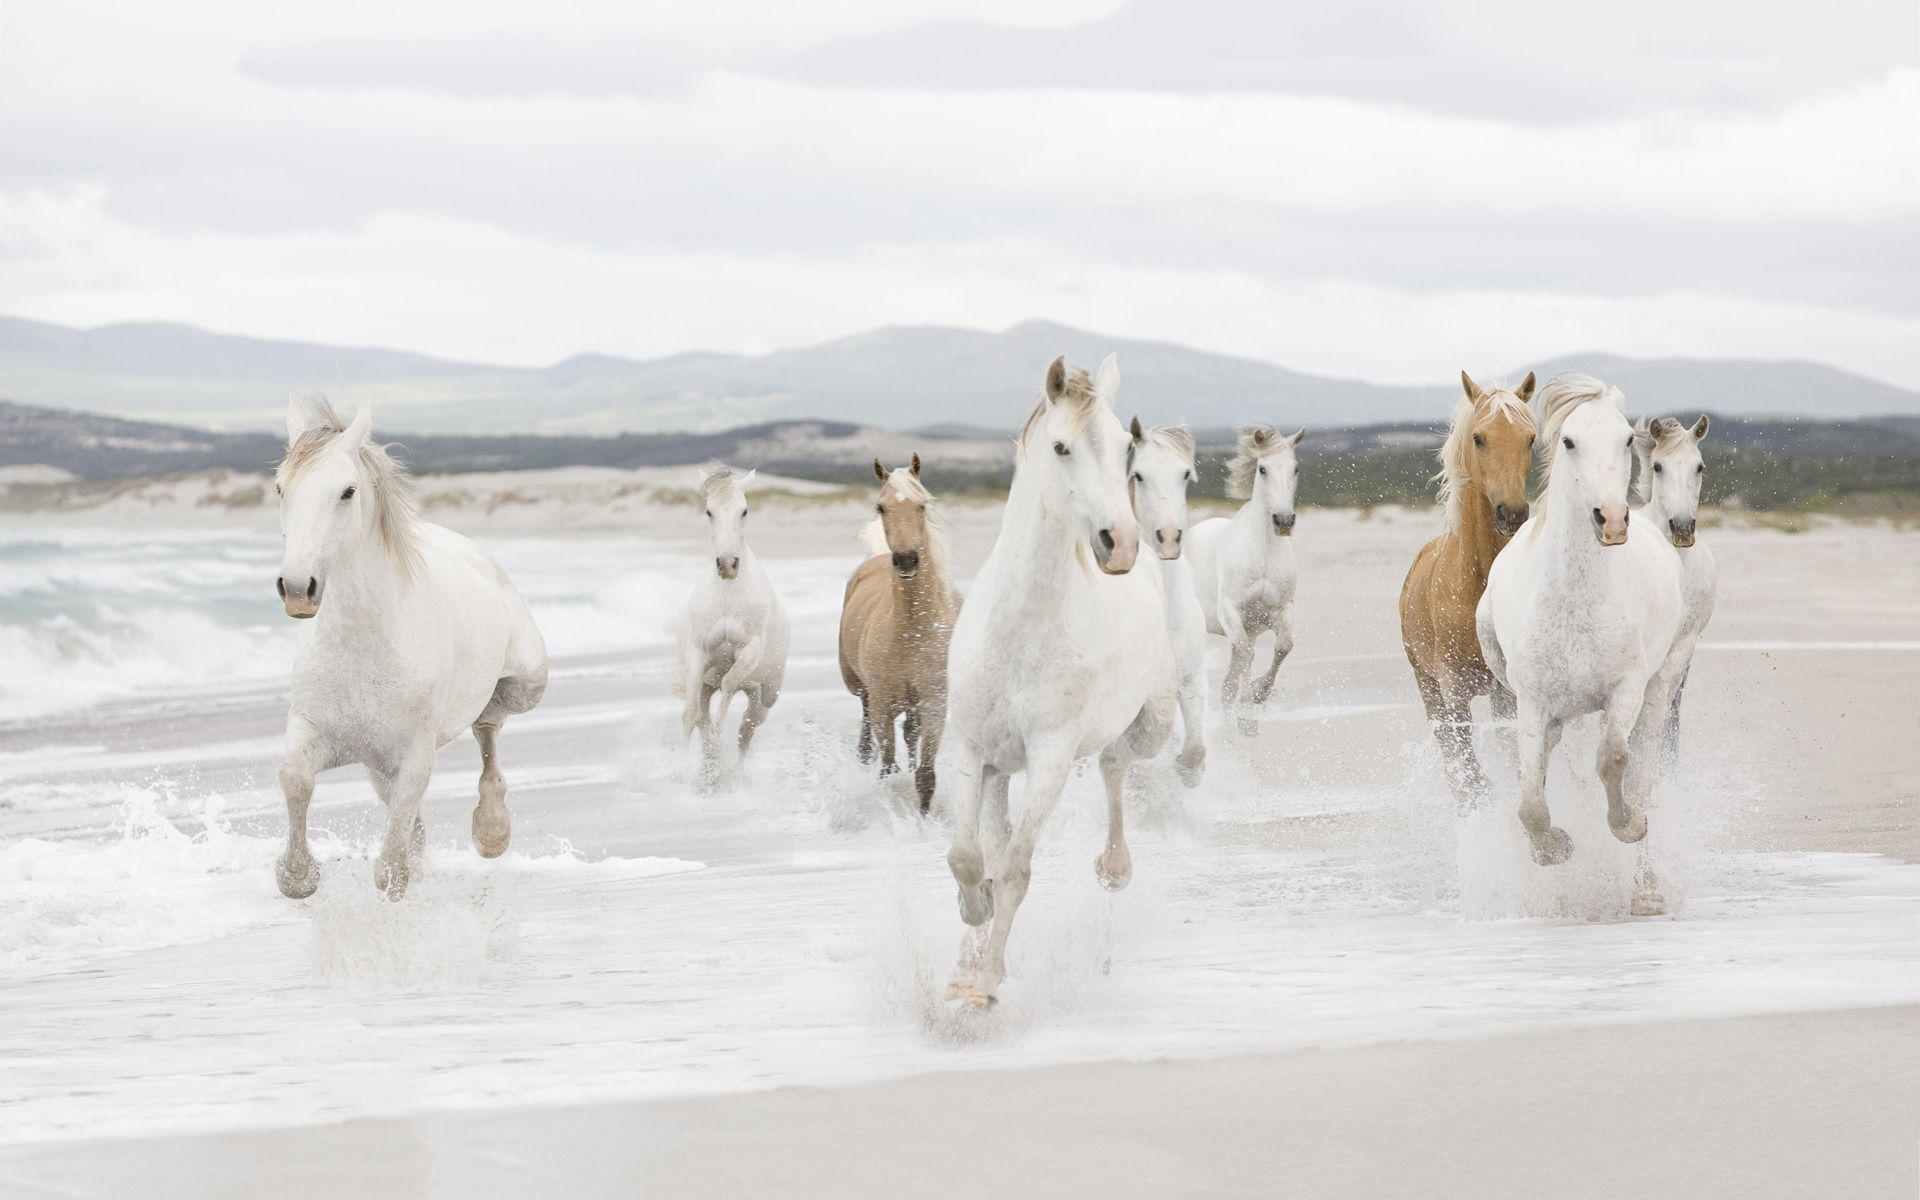 Wild horses running through water at a beach horses pinterest wild horses running through water at a beach sciox Images